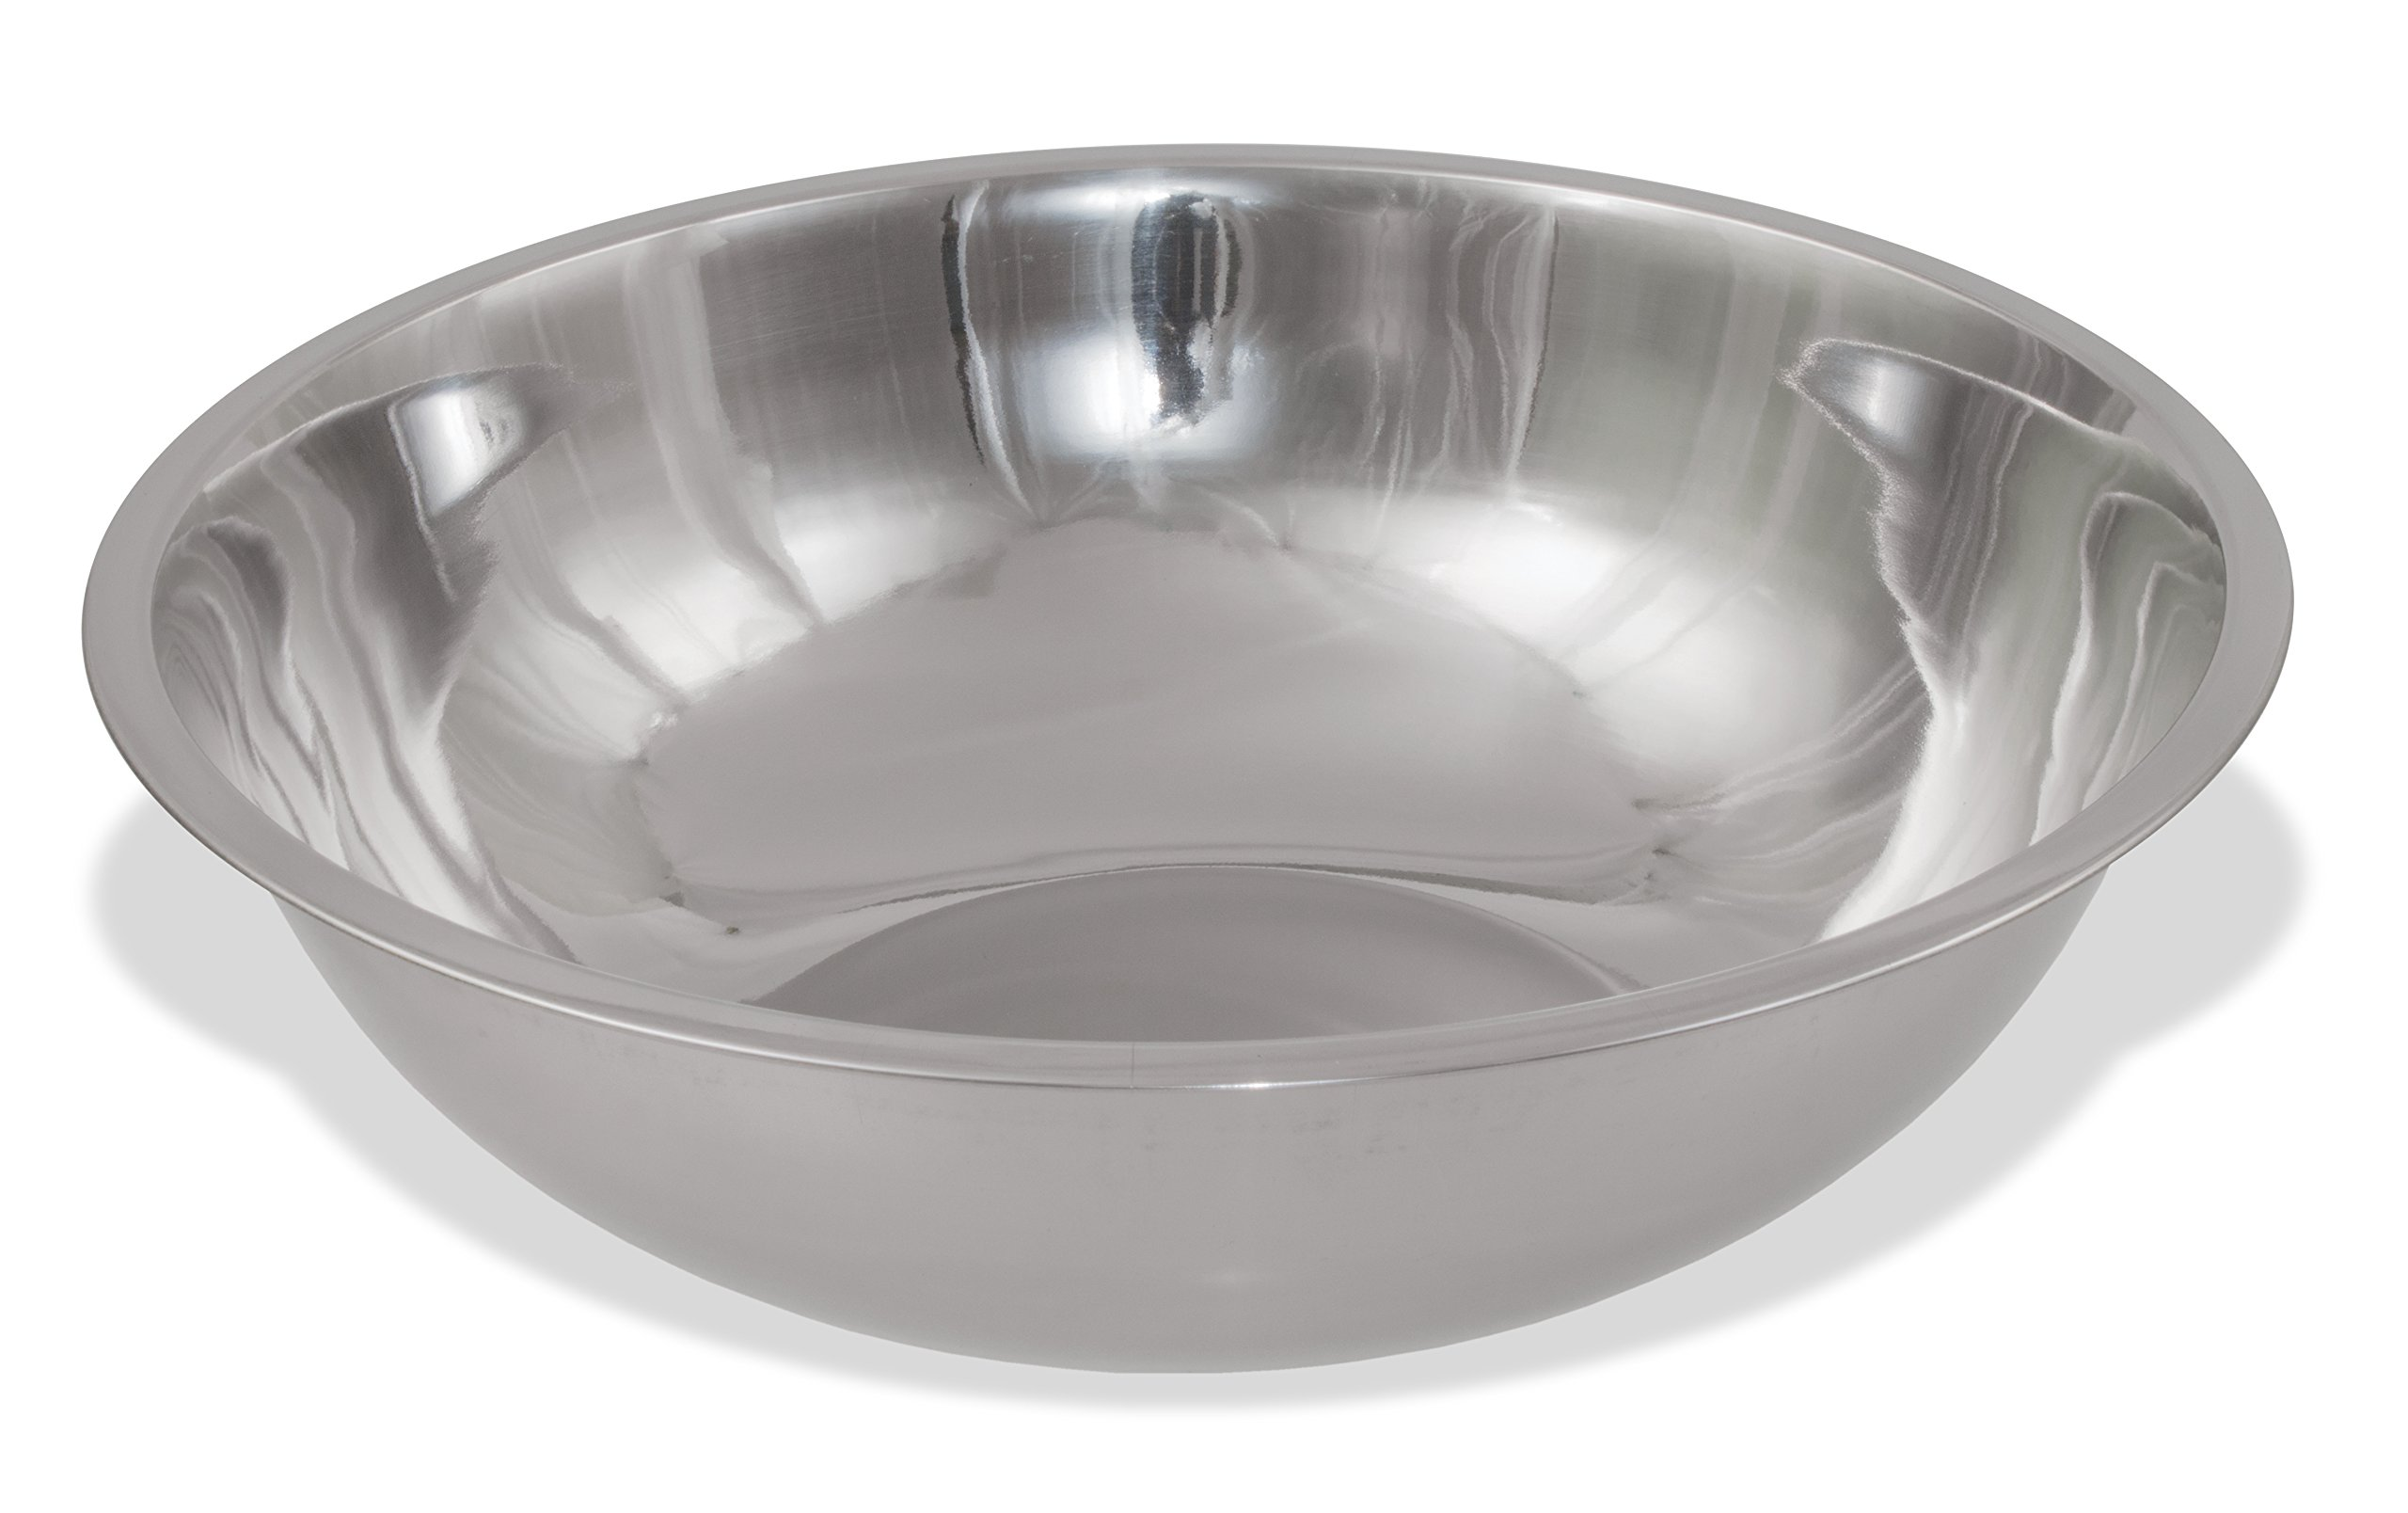 Crestware 20-Quart Stainless Steel Mixing Bowl